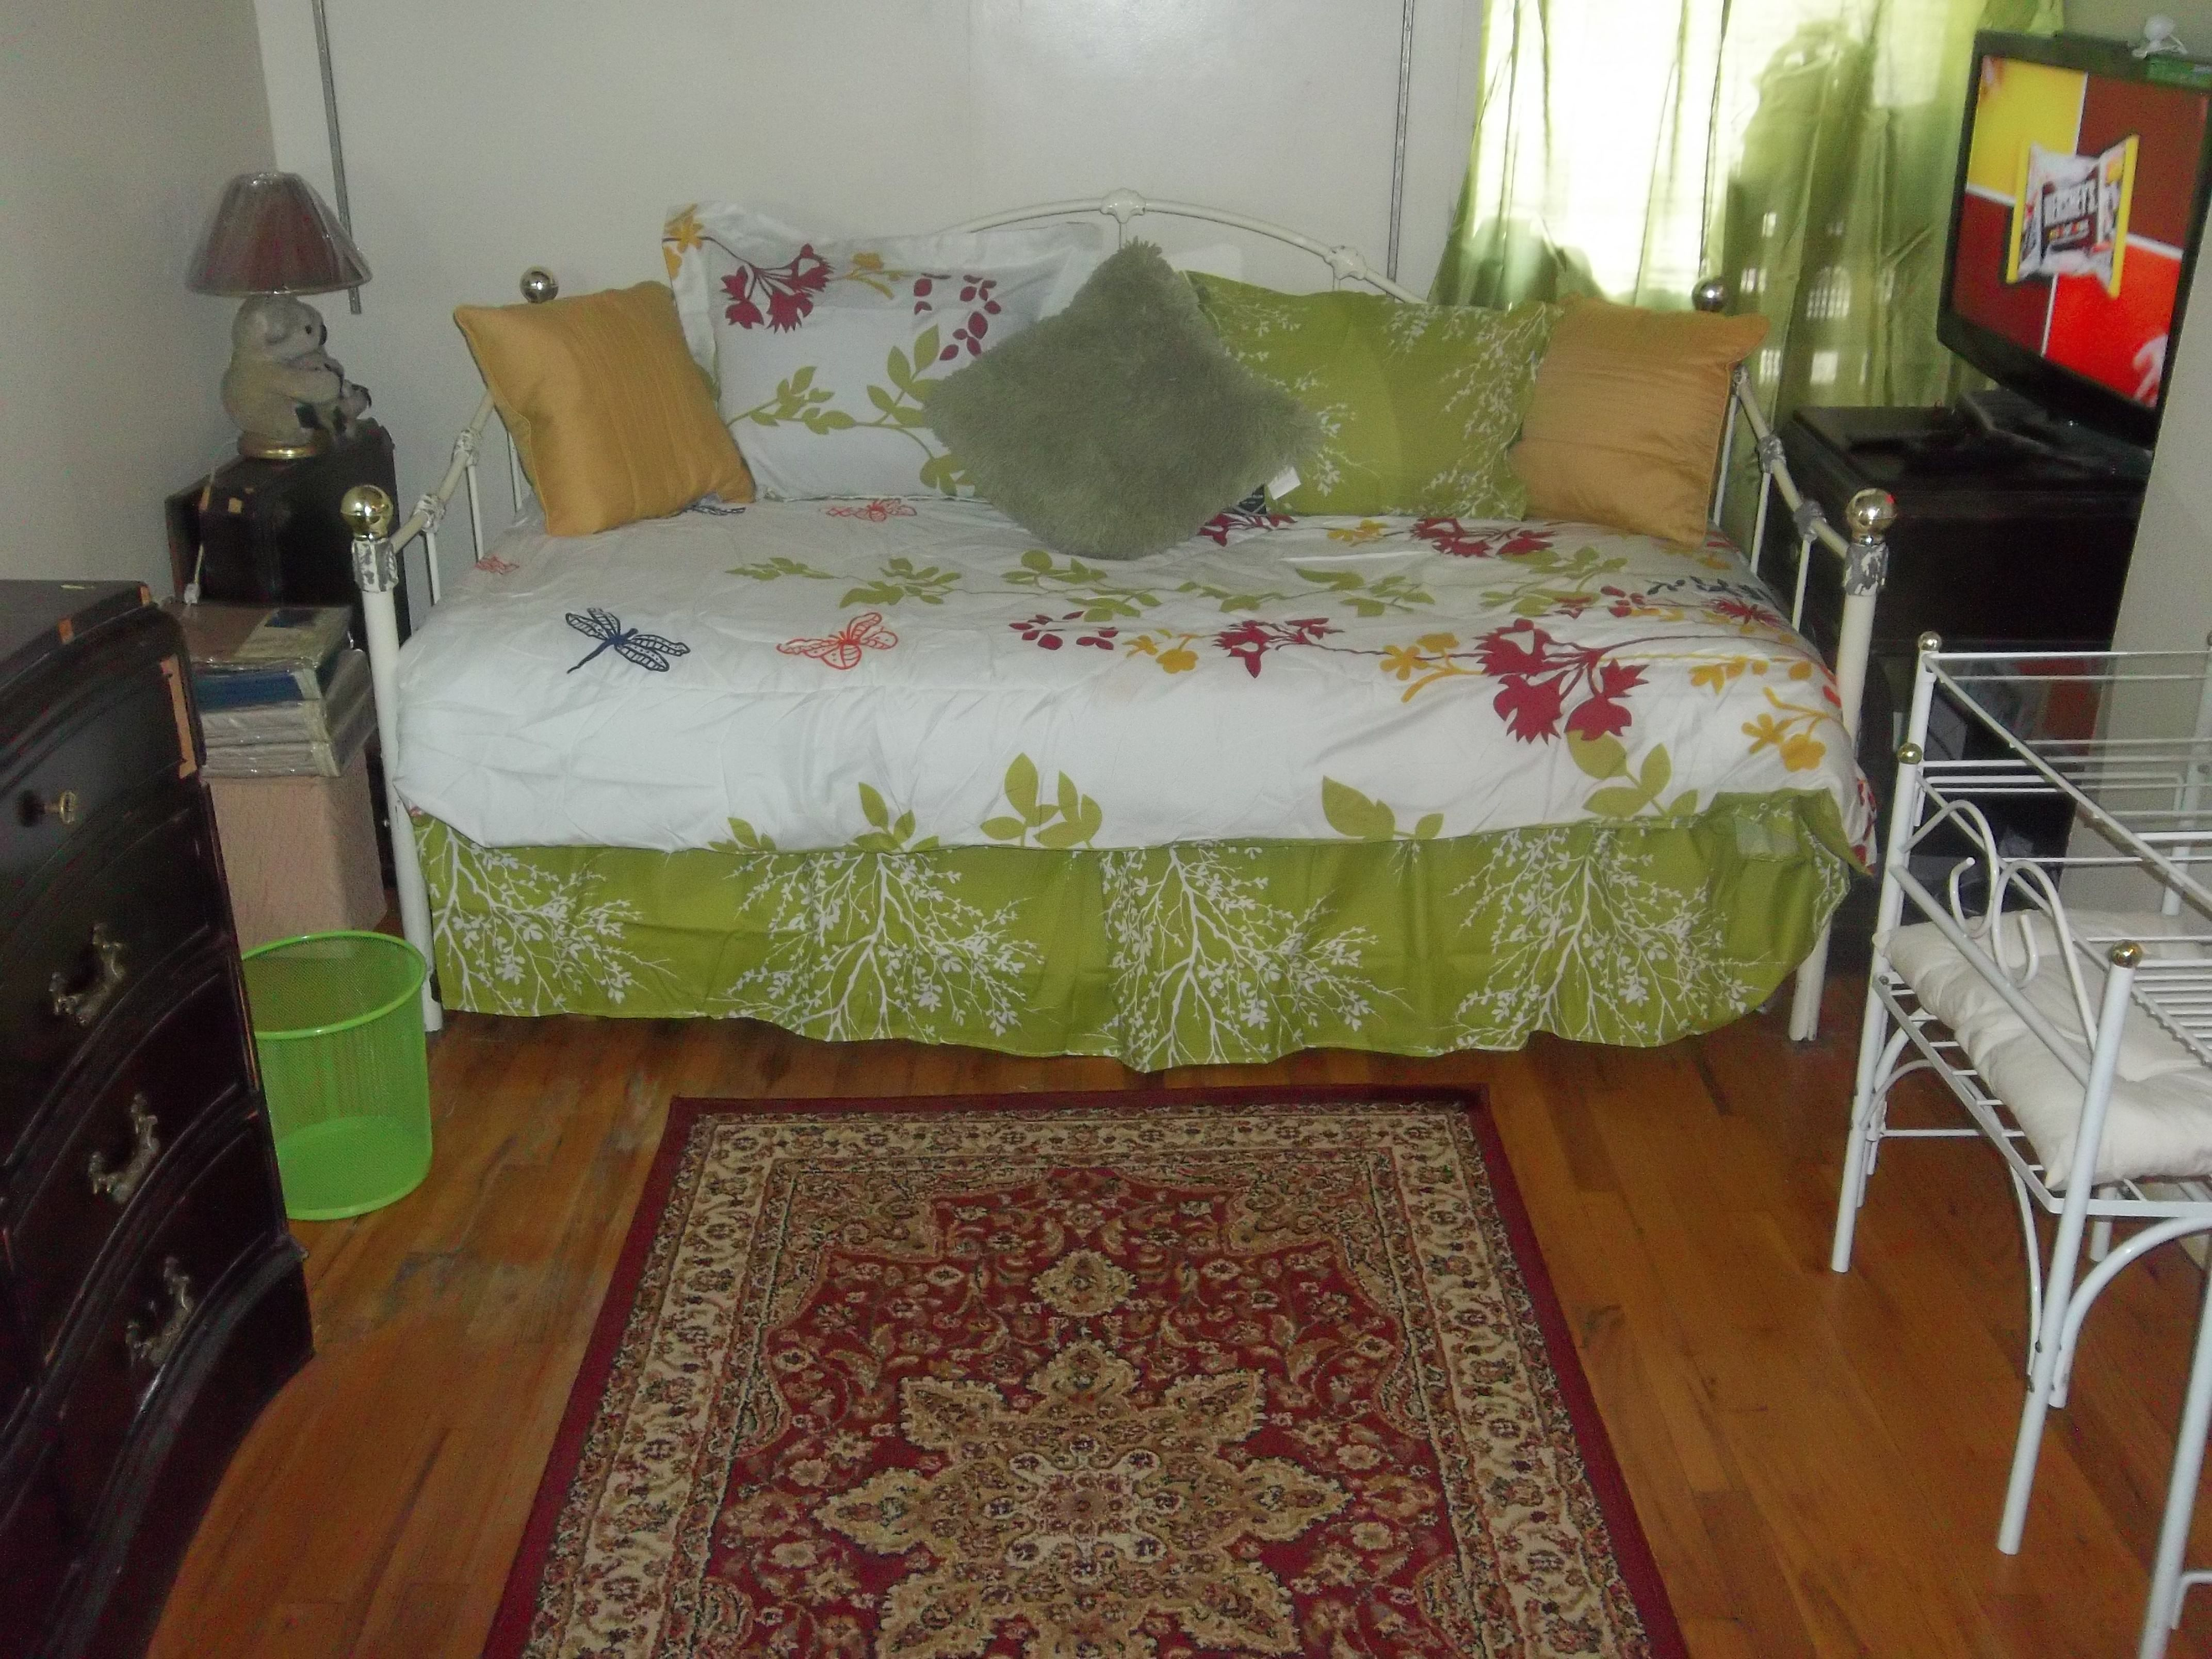 Diggz Find Your Perfect Roommate In Nyc Search For Roommates Rooms For Rent Rooms For Rent Roommate Rooms Rent In Nyc